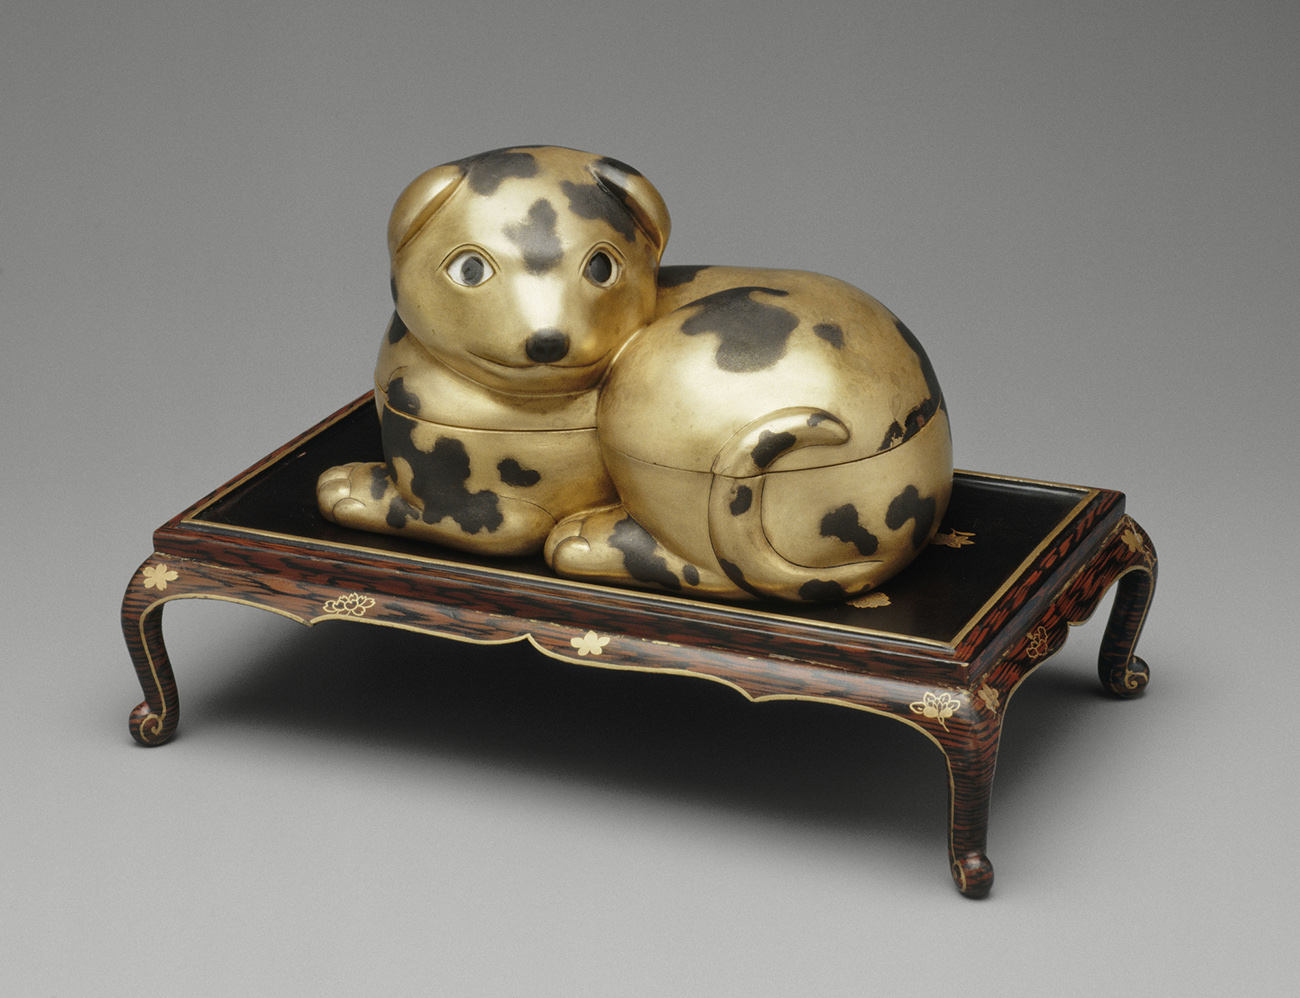 A gold colored box with a seam showing a top and bottom in the shape of a happy looking dog with spots on top of a small decorated wooden stand.